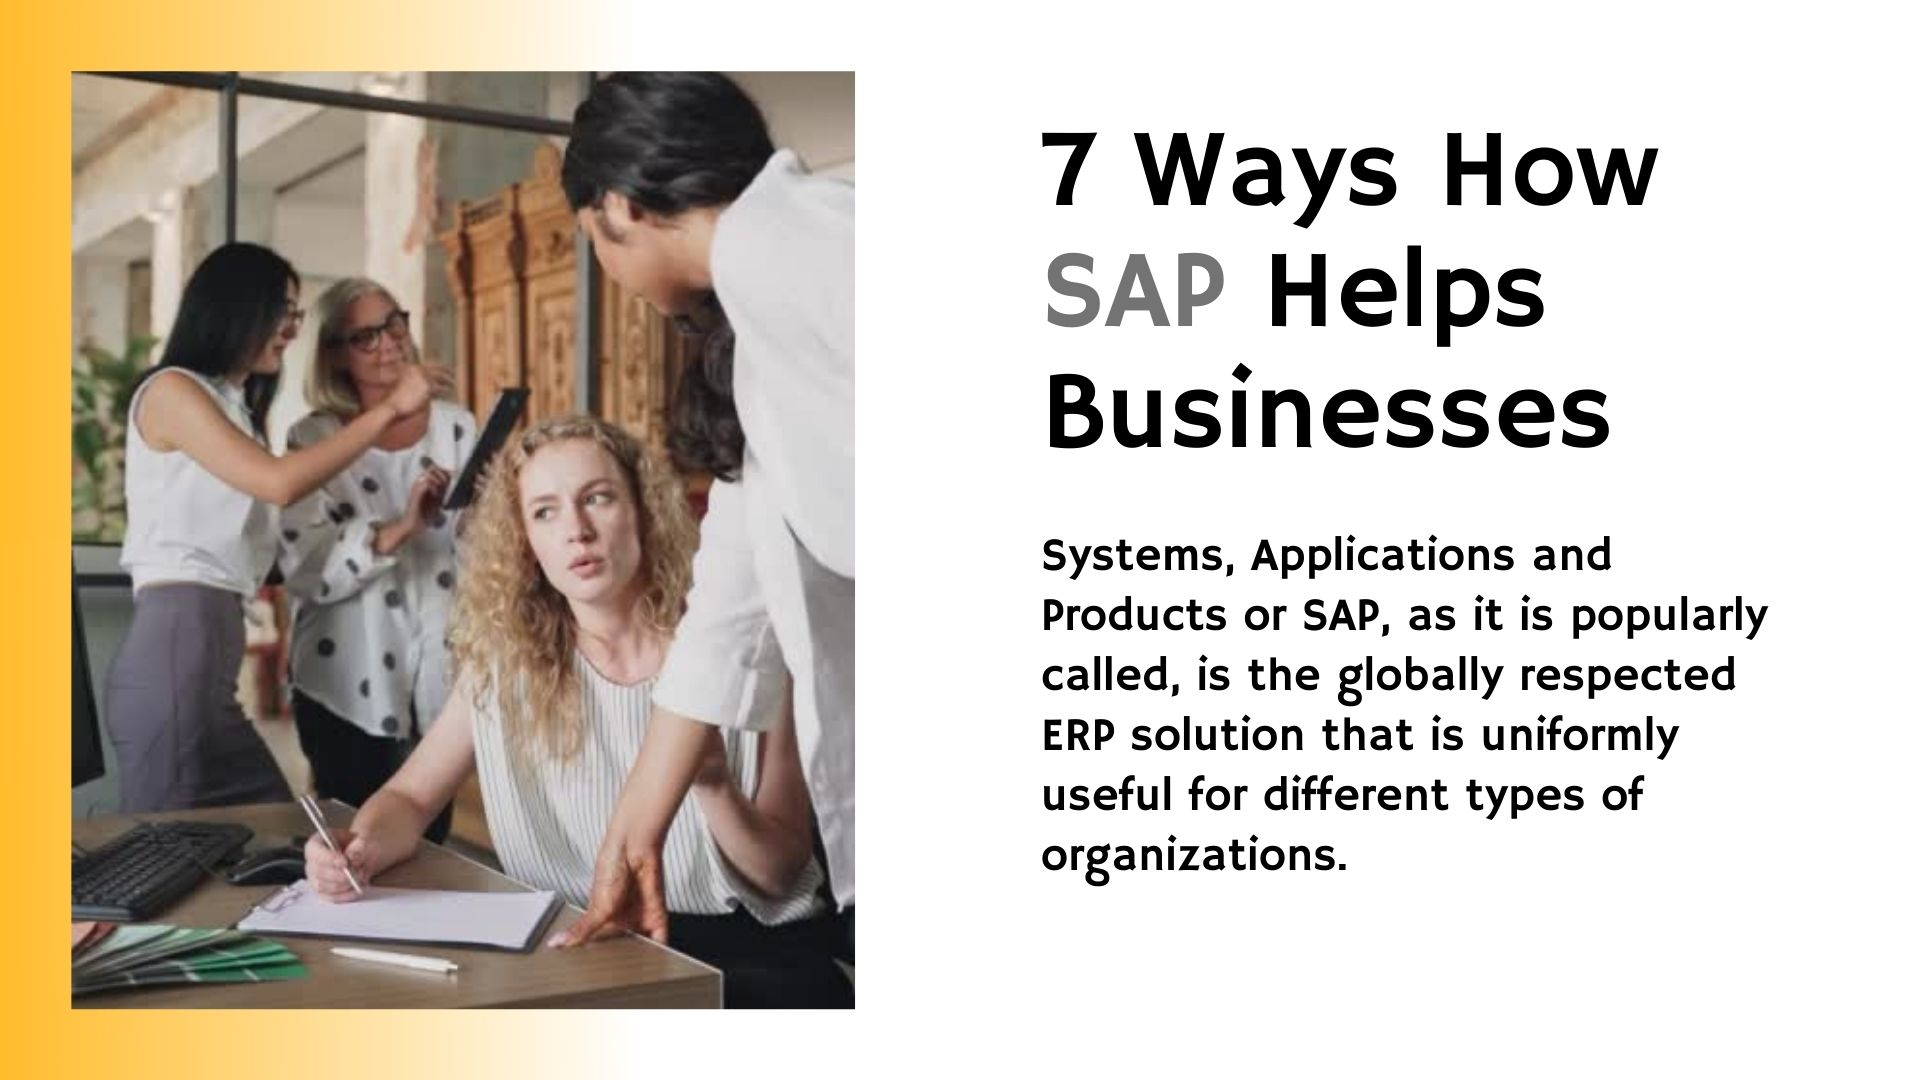 sap for business